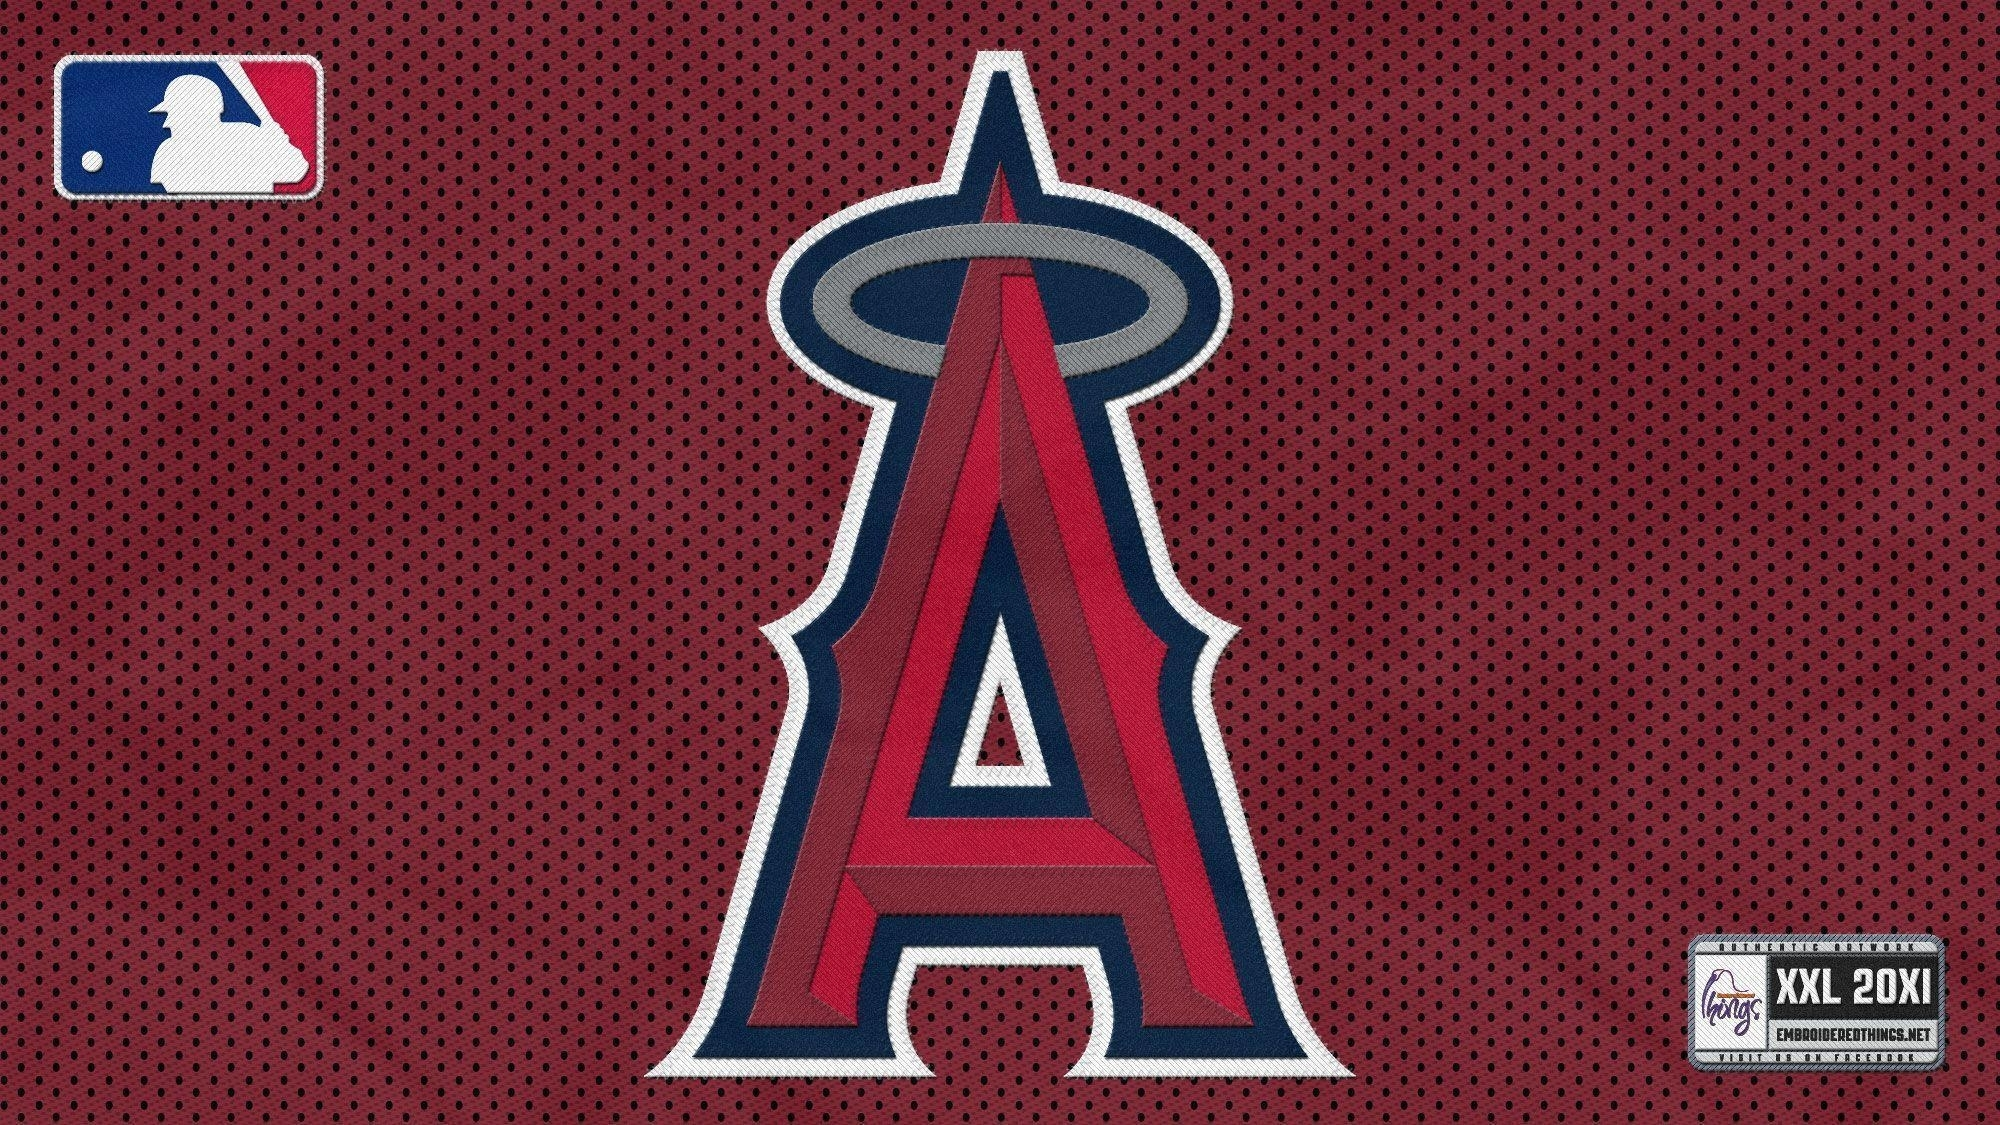 los angeles angels of anaheim wallpapers - wallpaper cave